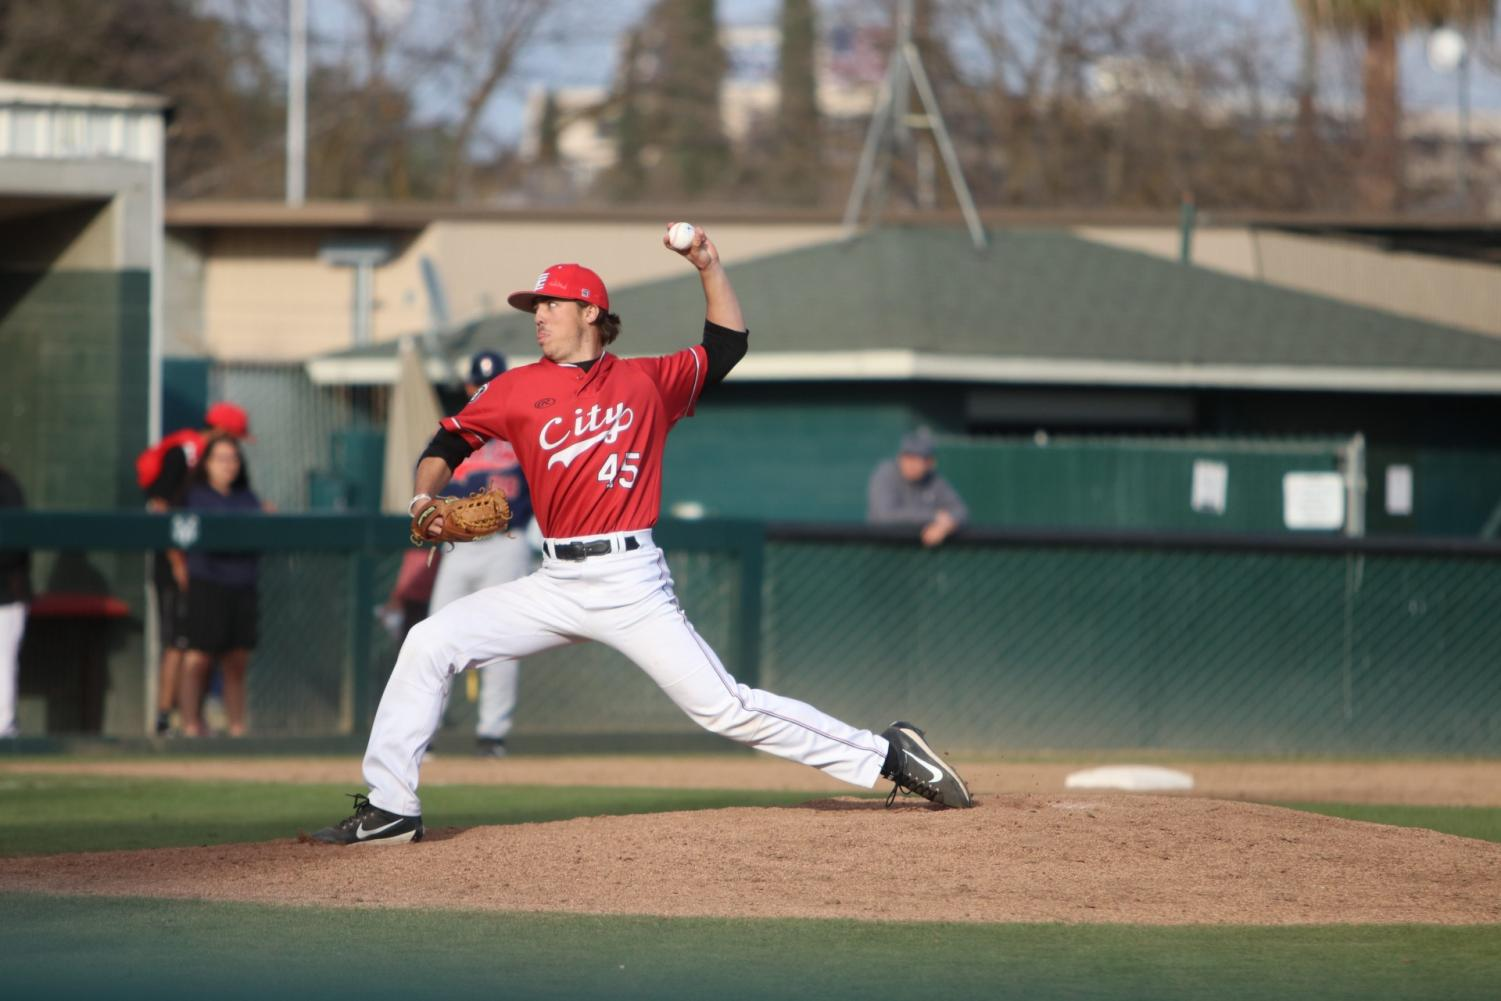 Pitcher Zac Whittaker strike out a Santa Rosa batter in the top of the 7th inning on Saturday, Feb. 24, 2018 by Larry Valenzuela.